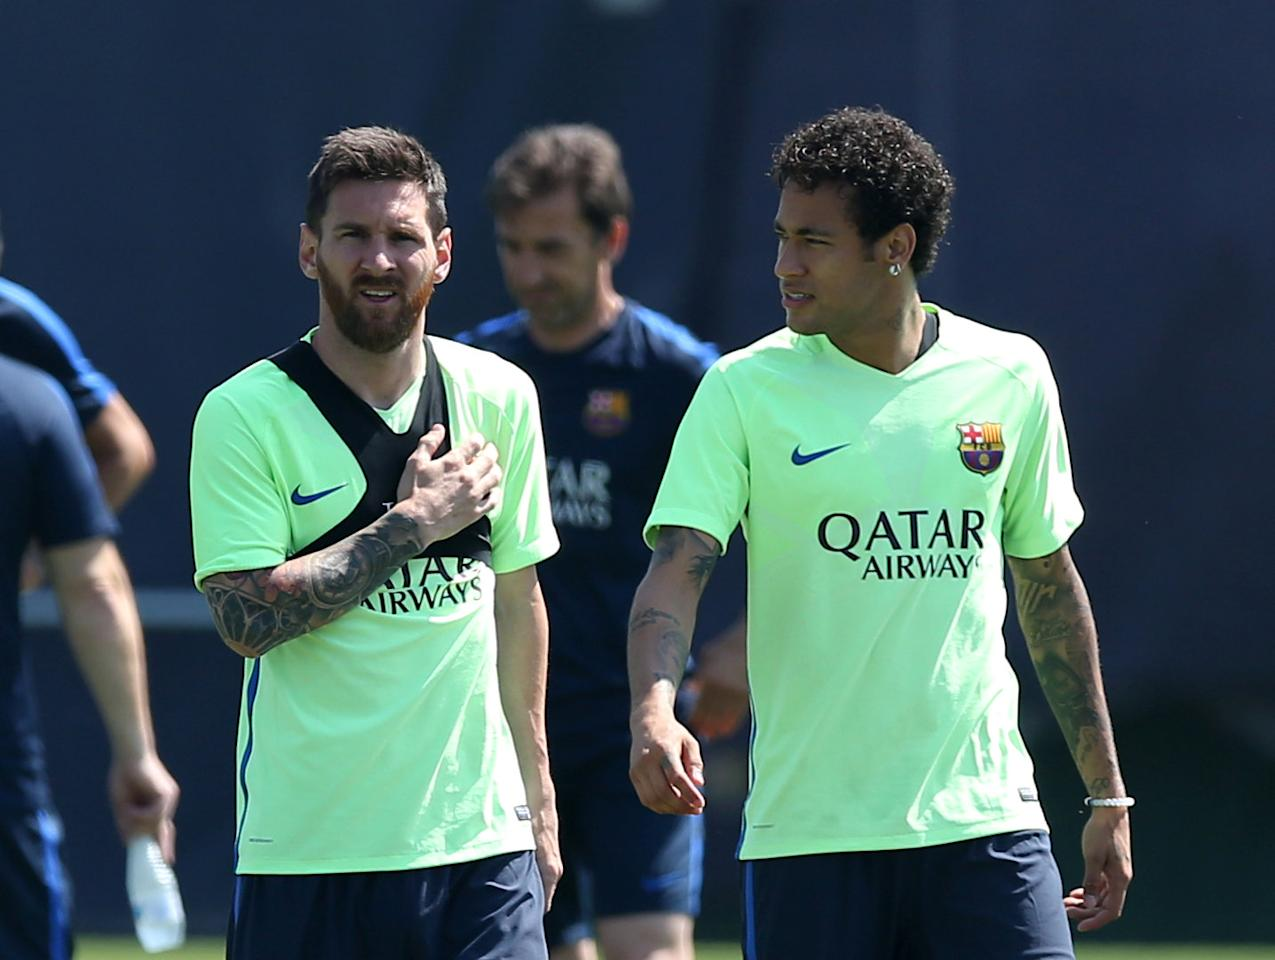 Football Soccer - Barcelona training session - Spanish King's Cup - Joan Gamper training camp, Barcelona, Spain - 26/5/17 - Barcelona's Lionel Messi and Neymar speak during a training session. REUTERS/Albert Gea